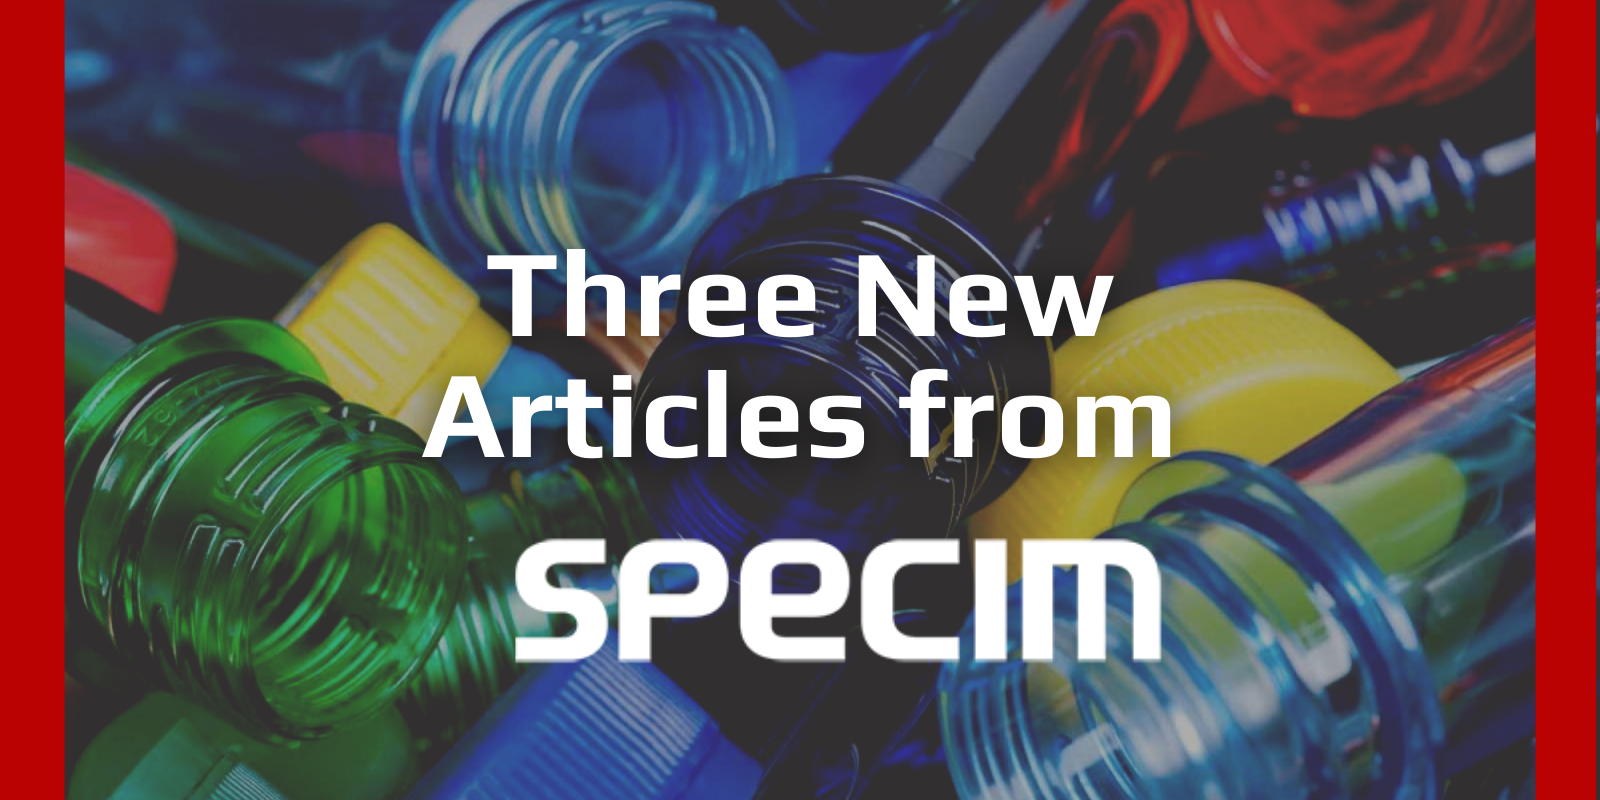 New Articles from Specim